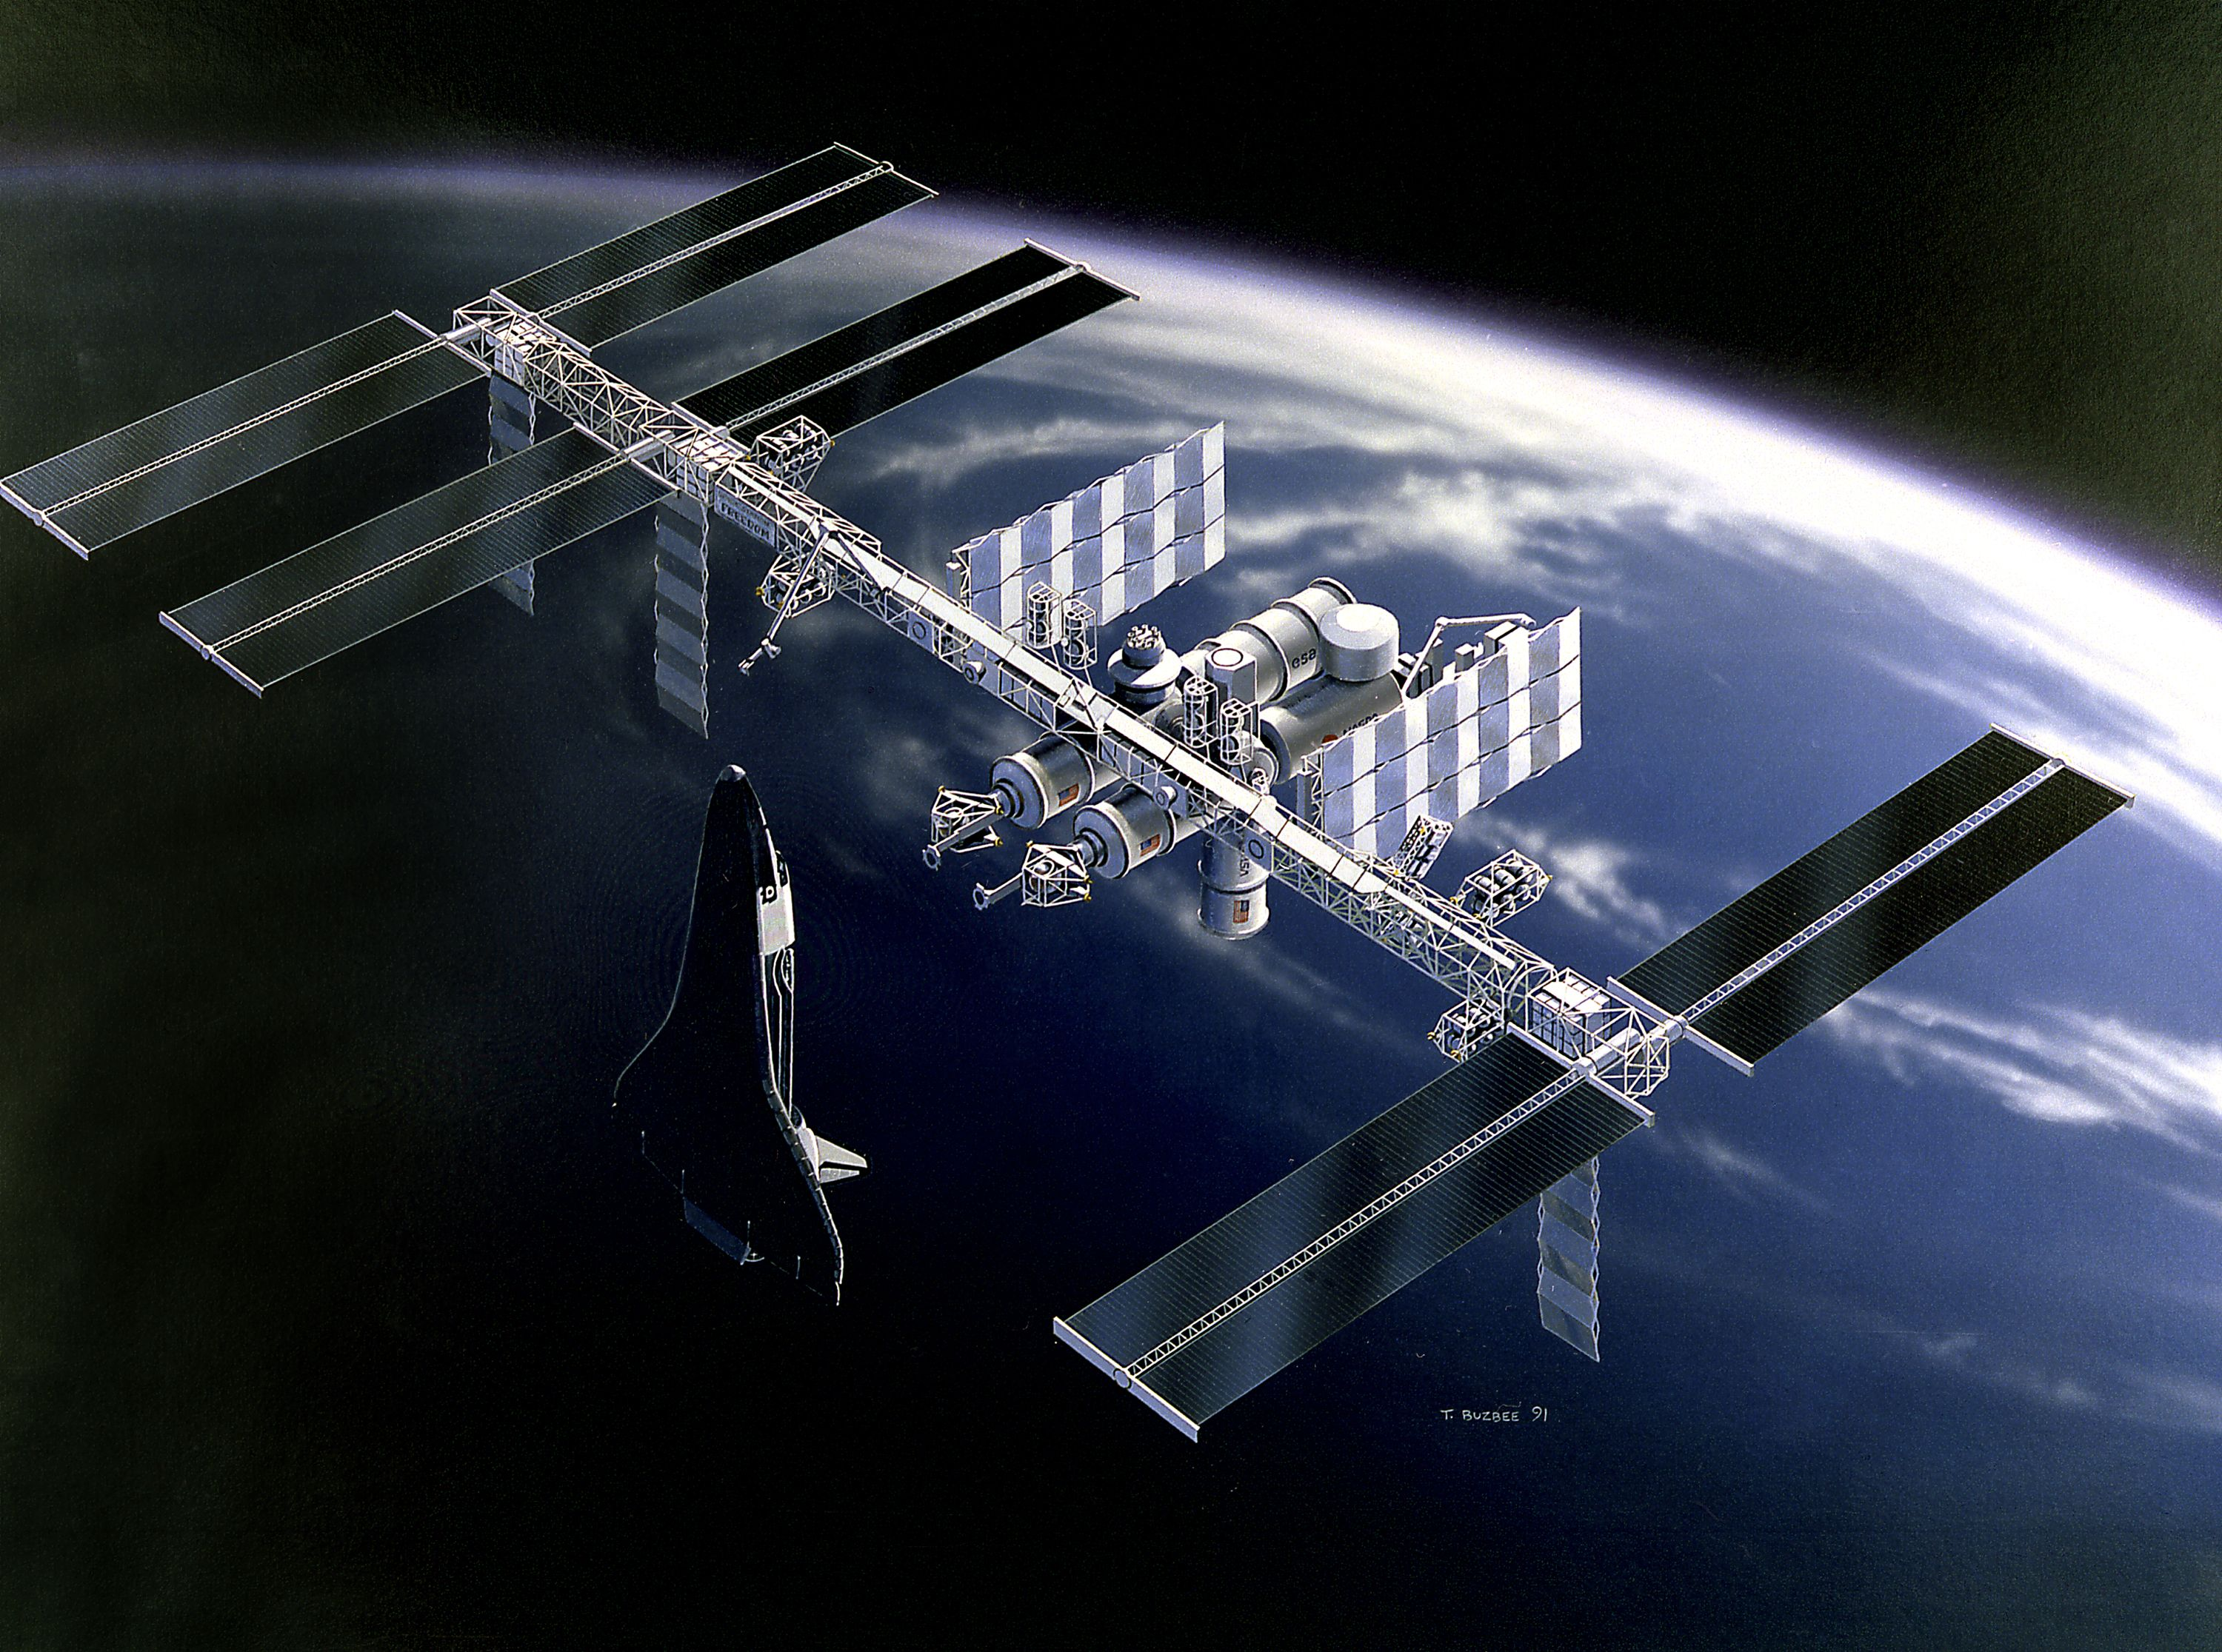 Space_Station_Freedom_design_1991 Space station, Space